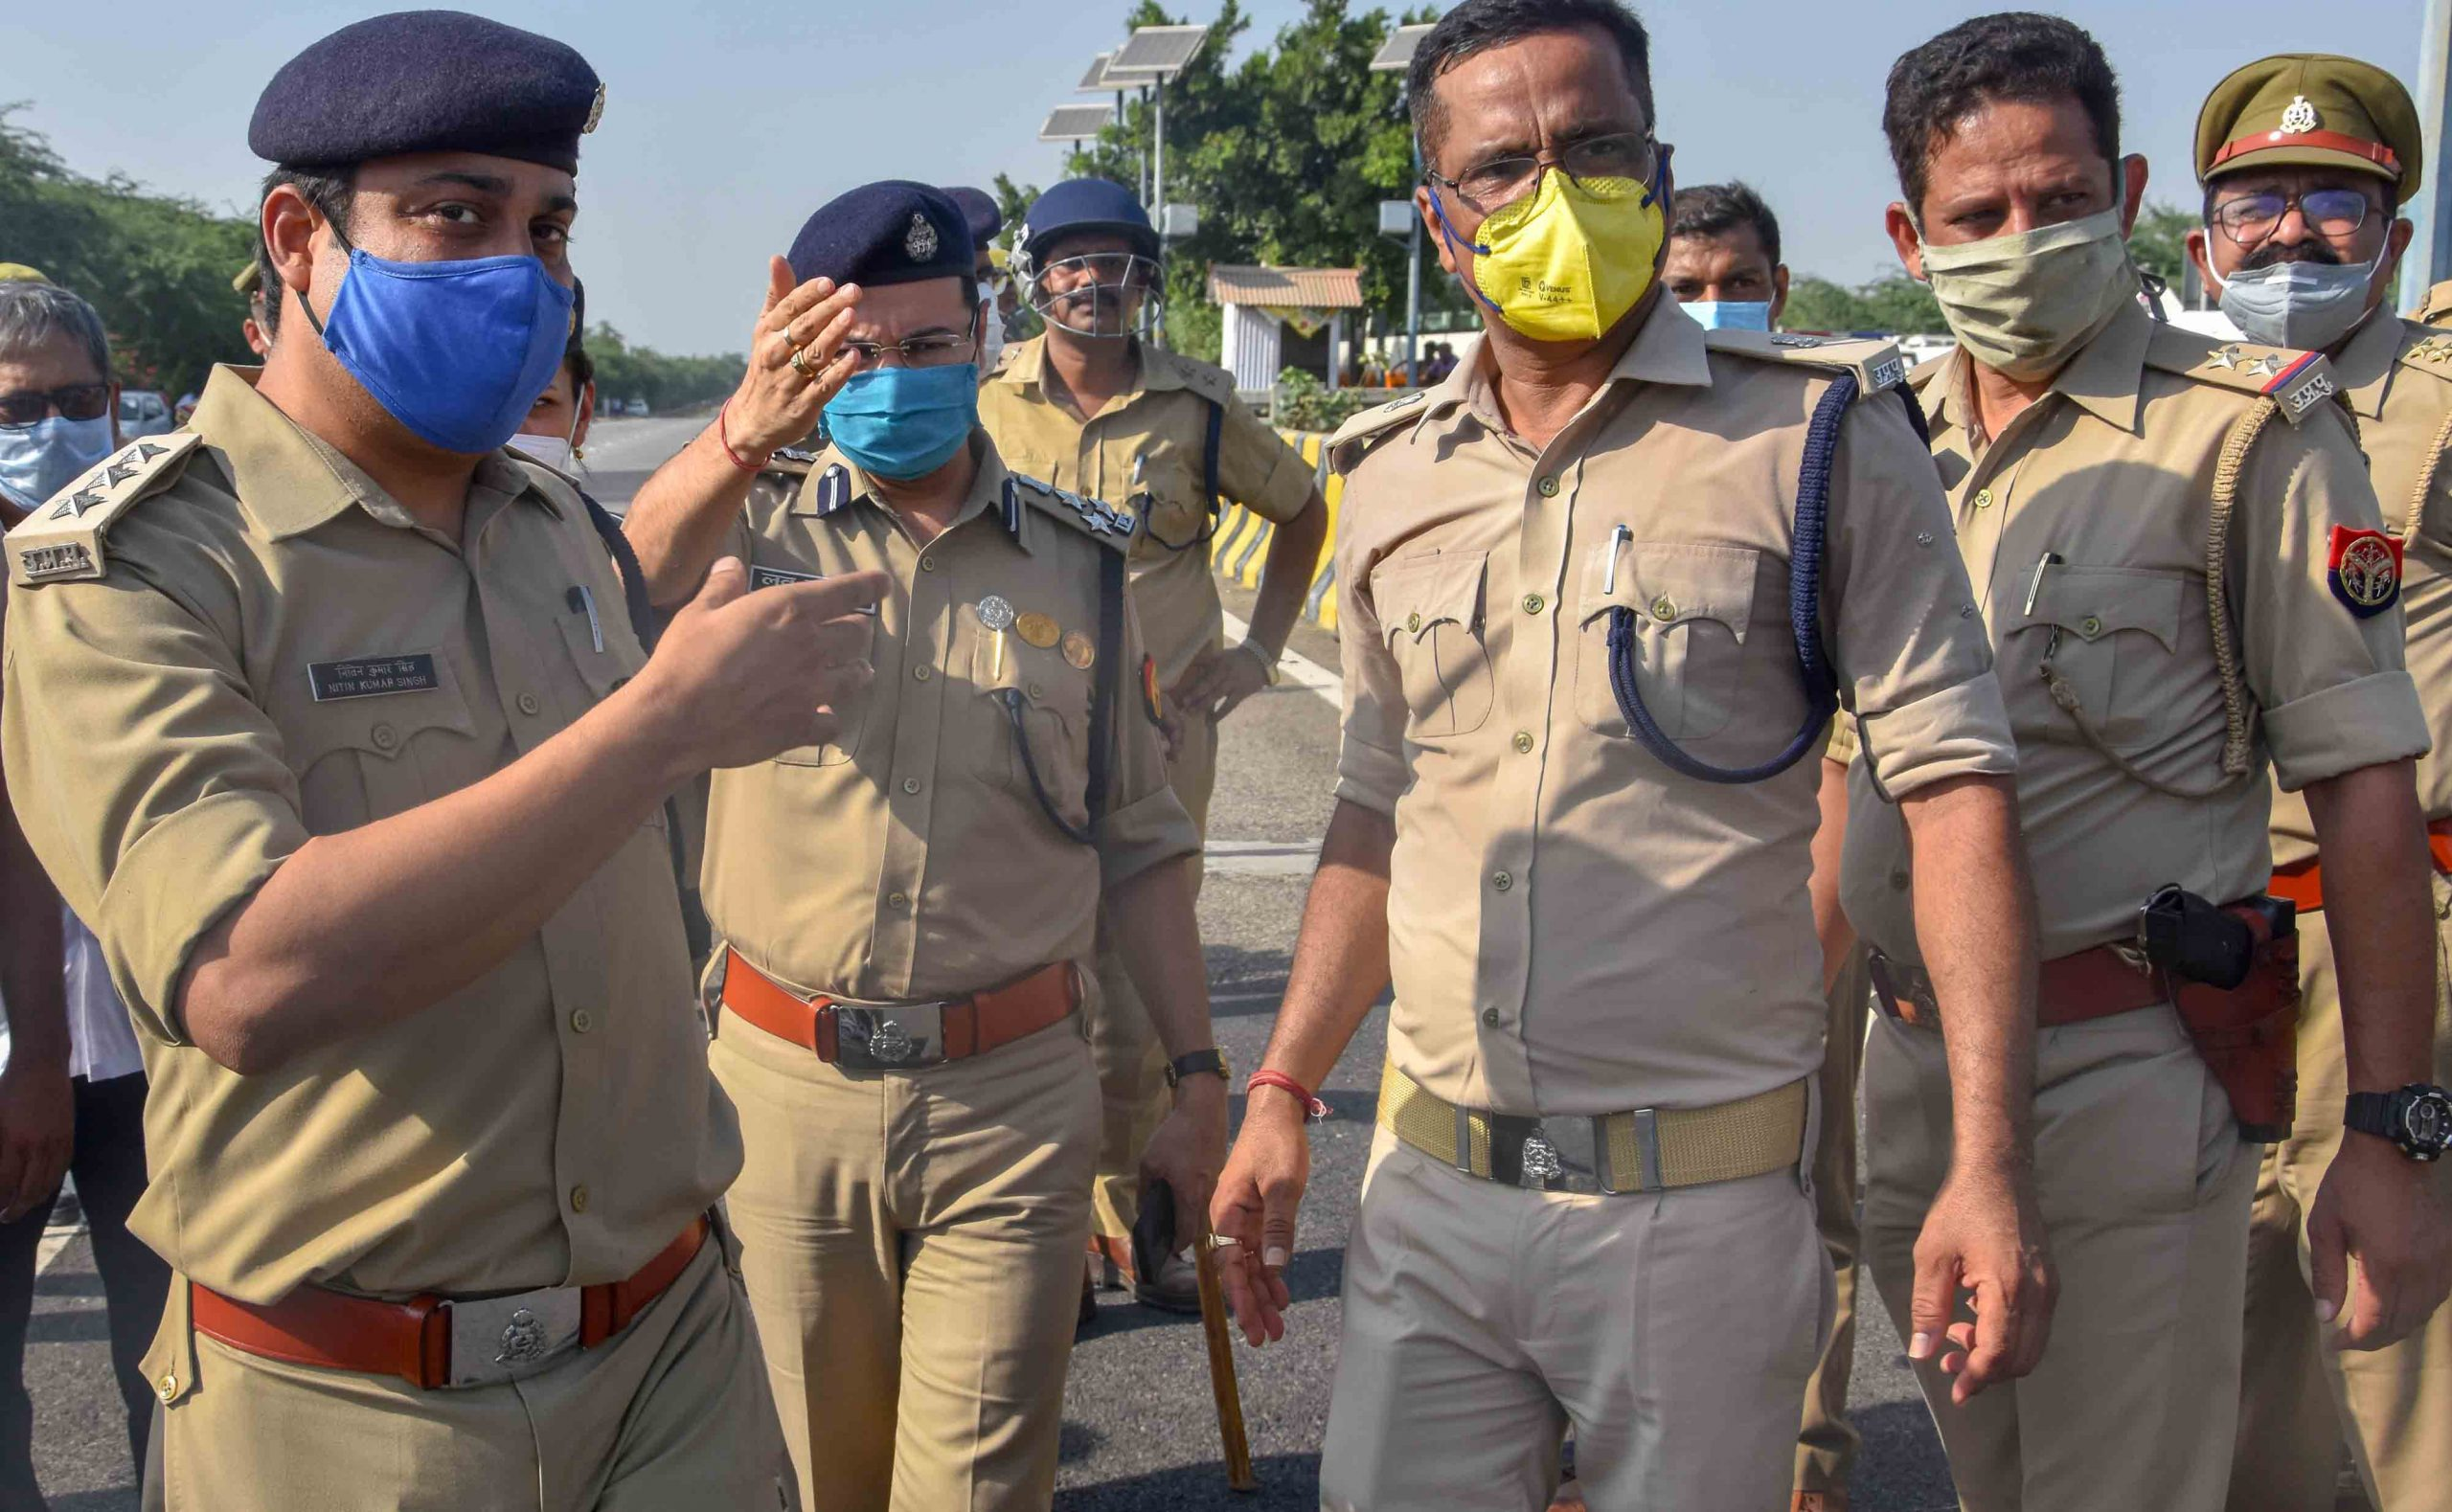 Family of Hathras gang rape victim leaves to appear before